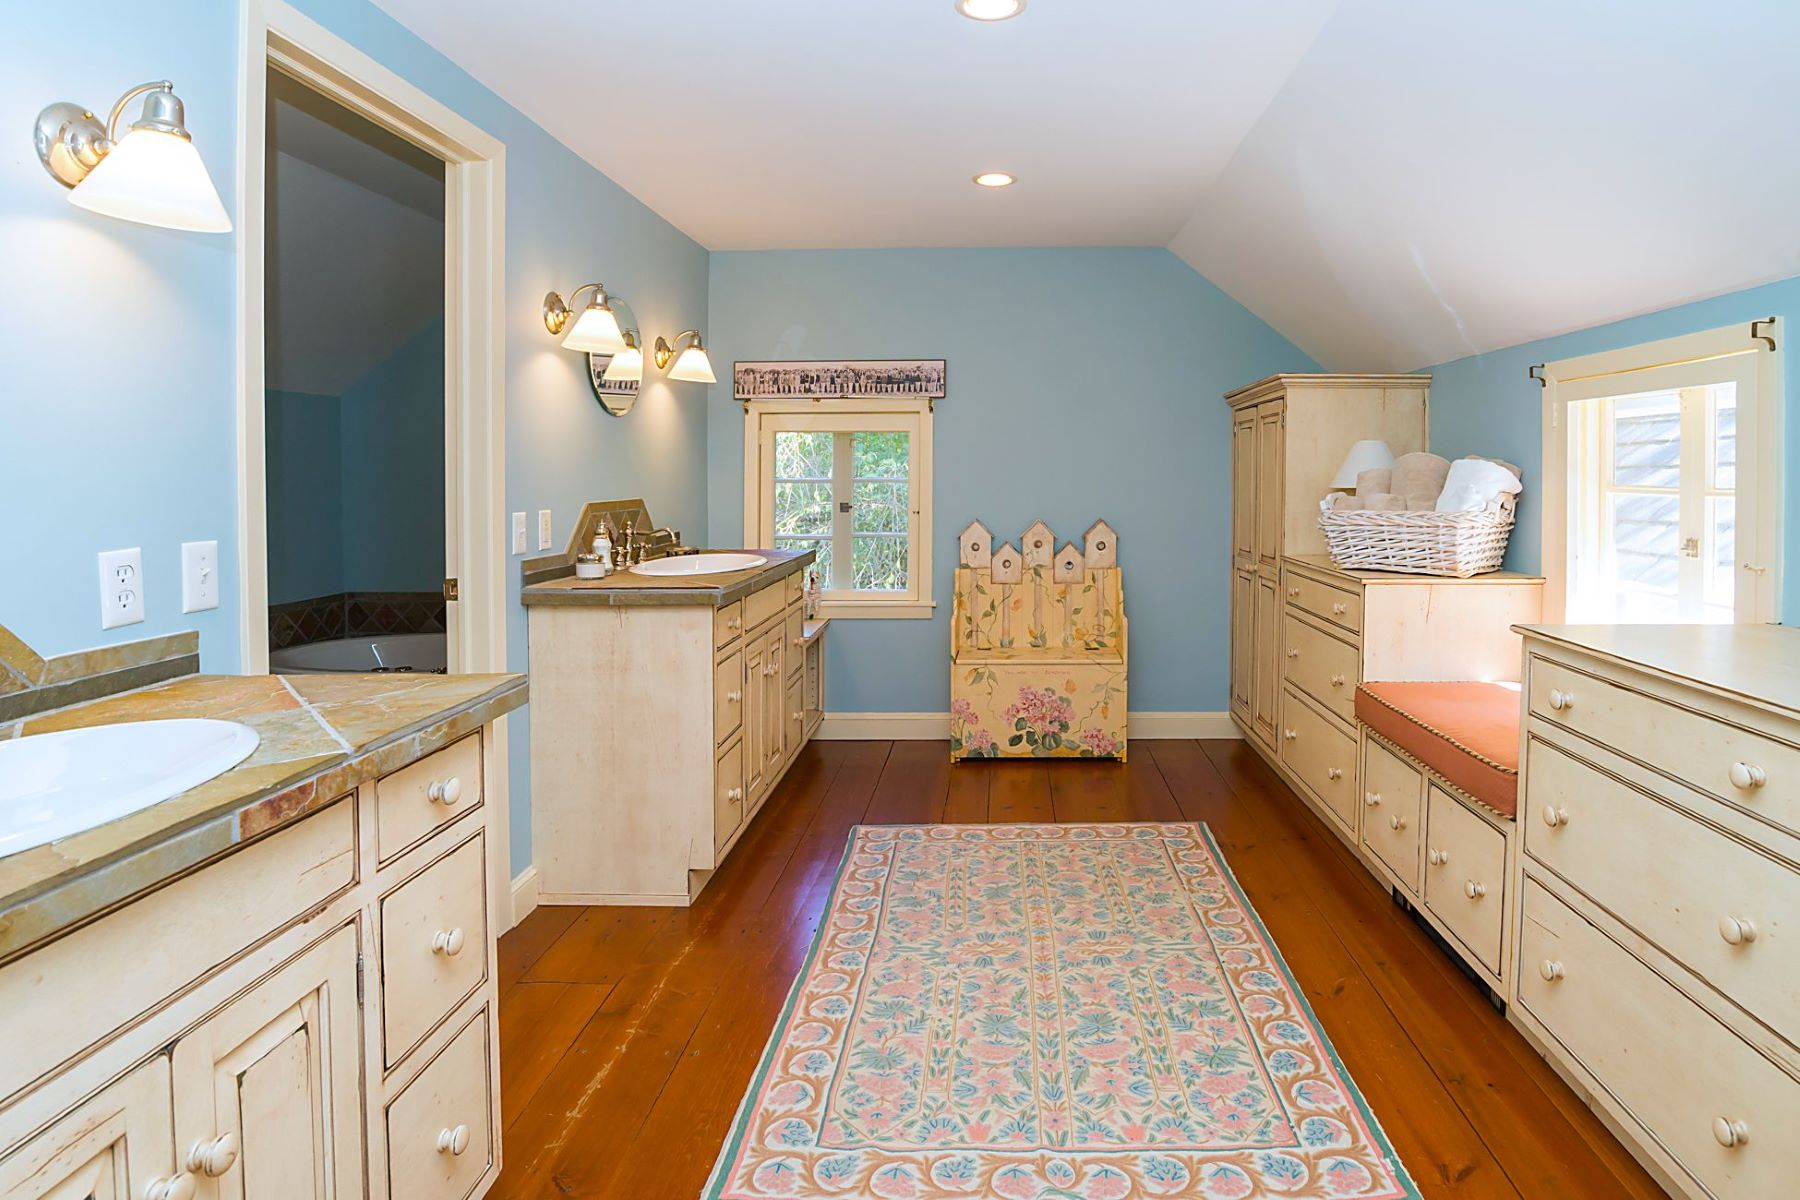 Additional photo for property listing at Red Bridge Farm: A Soothing Retreat 155 Lower Creek Road, Stockton, New Jersey 08559 United States